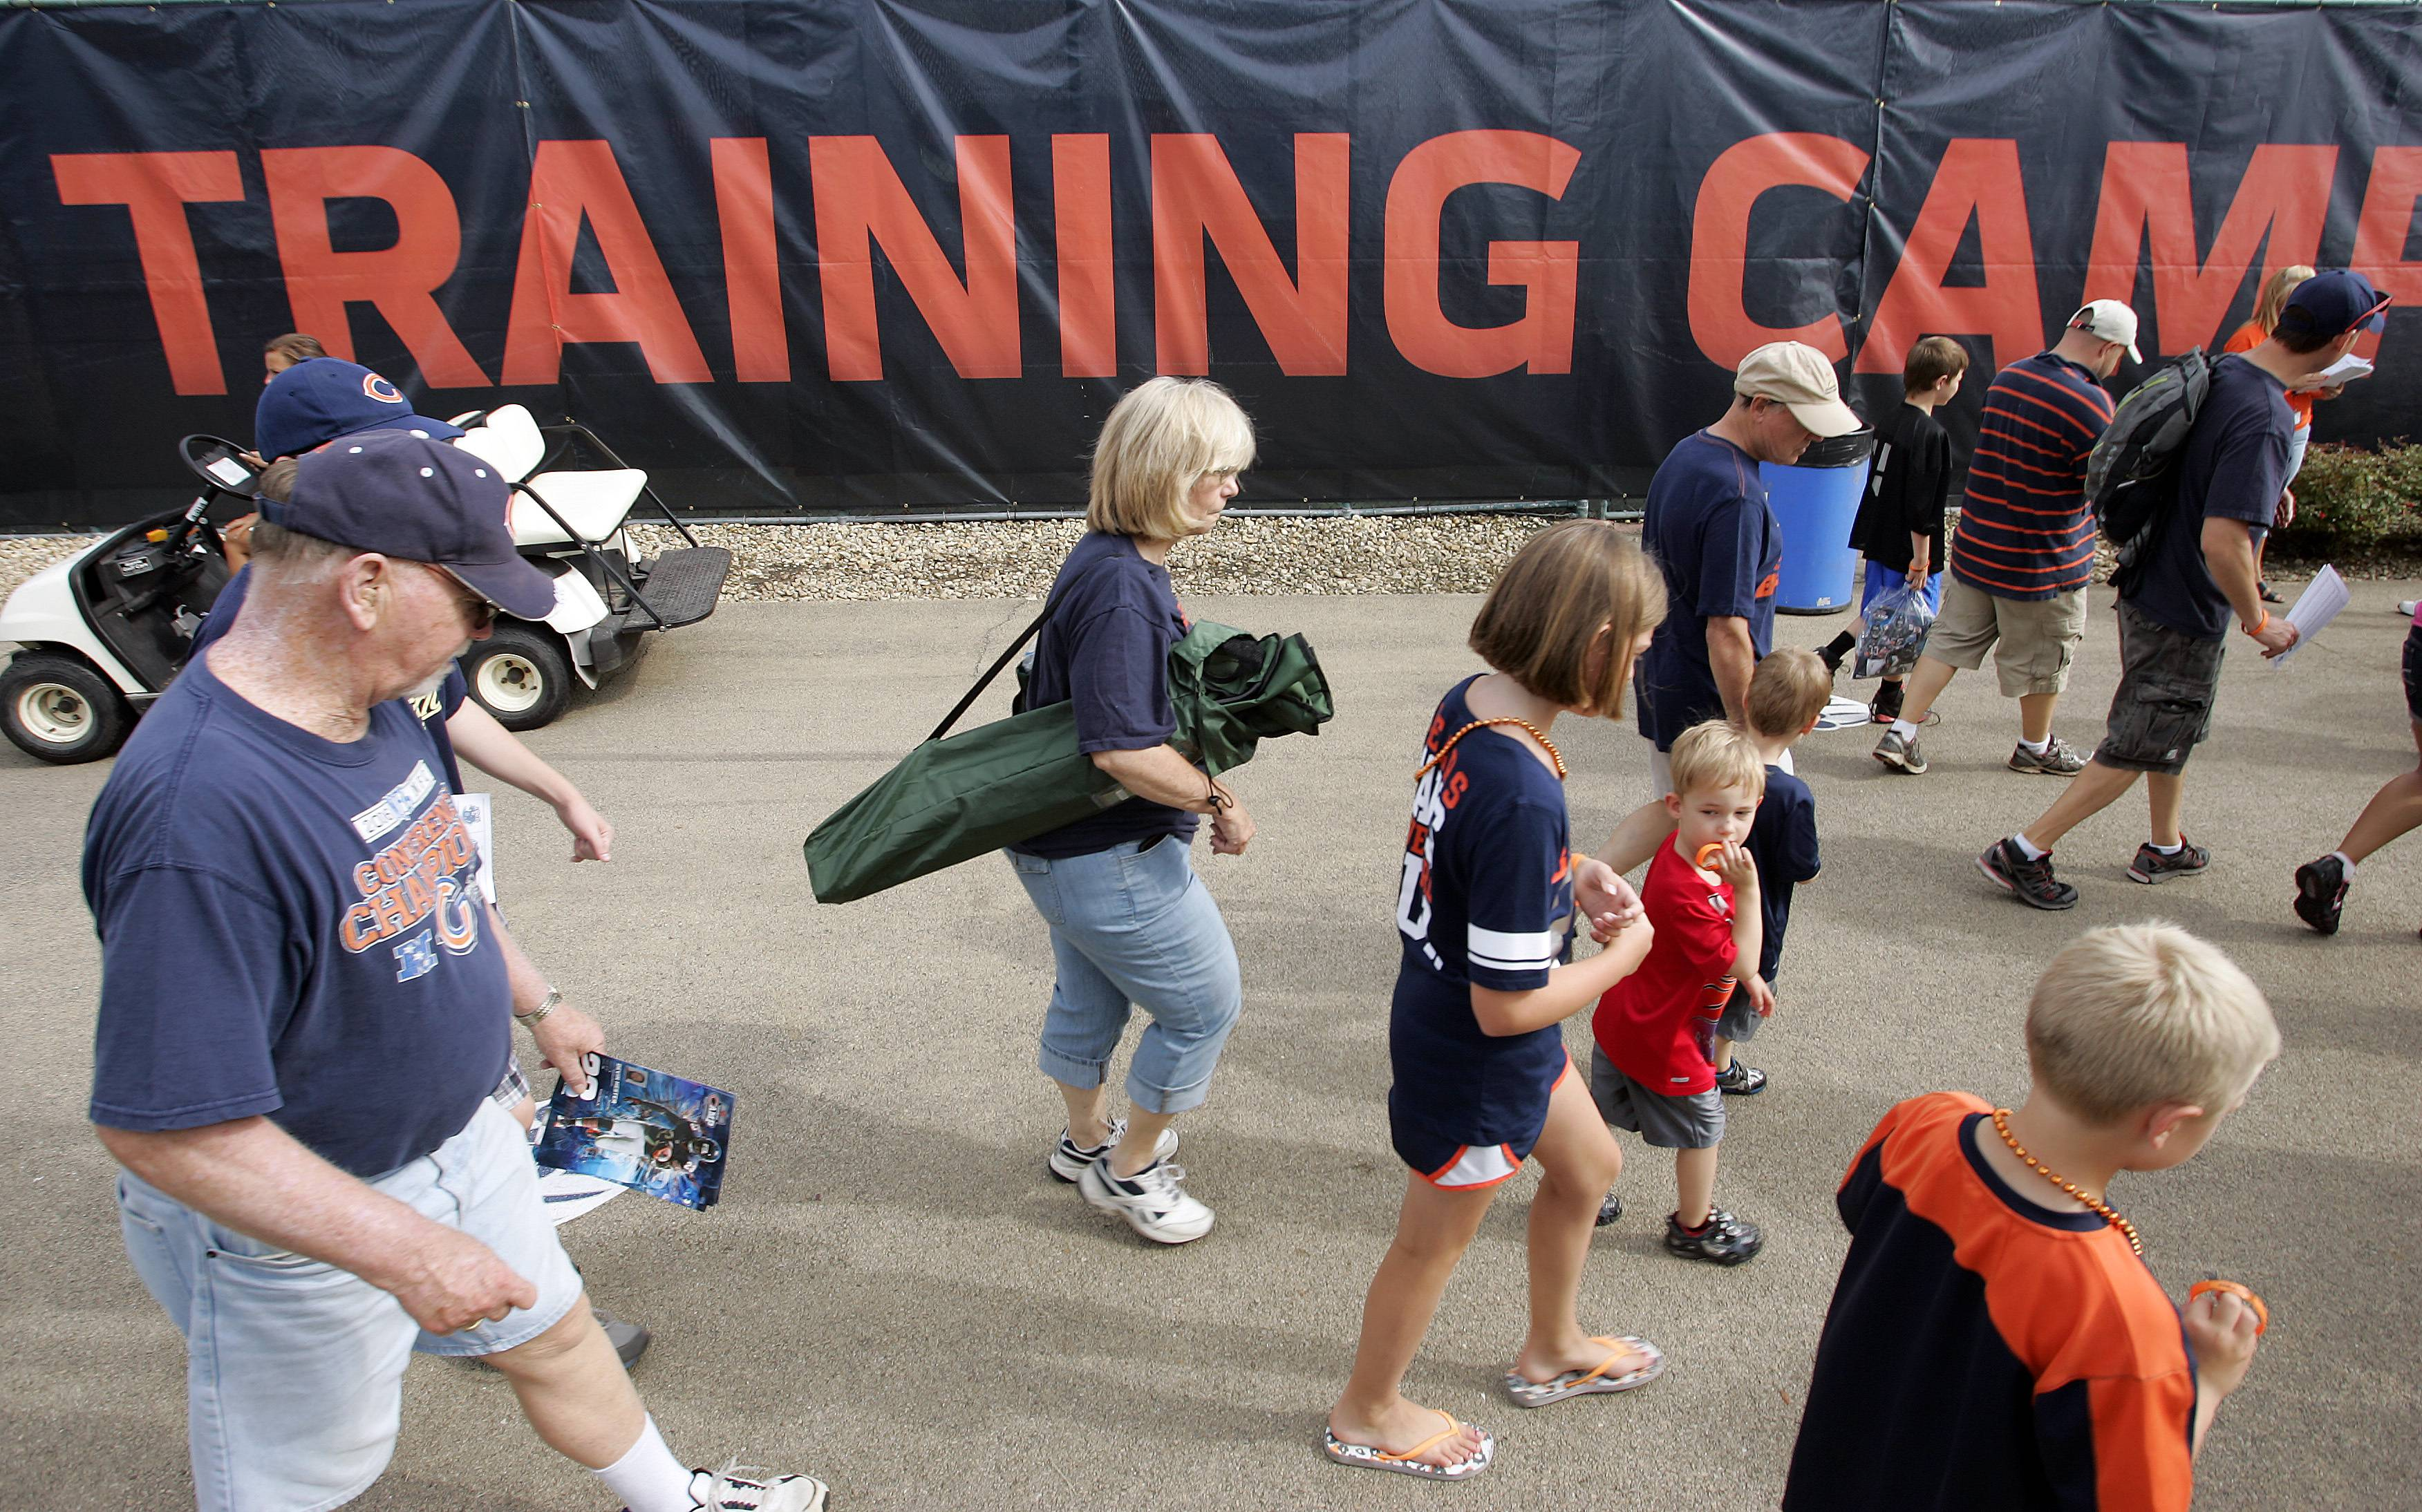 Fans arrive at the Bears training camp on the campus of Olivet Nazarene University in Bourbonnais.